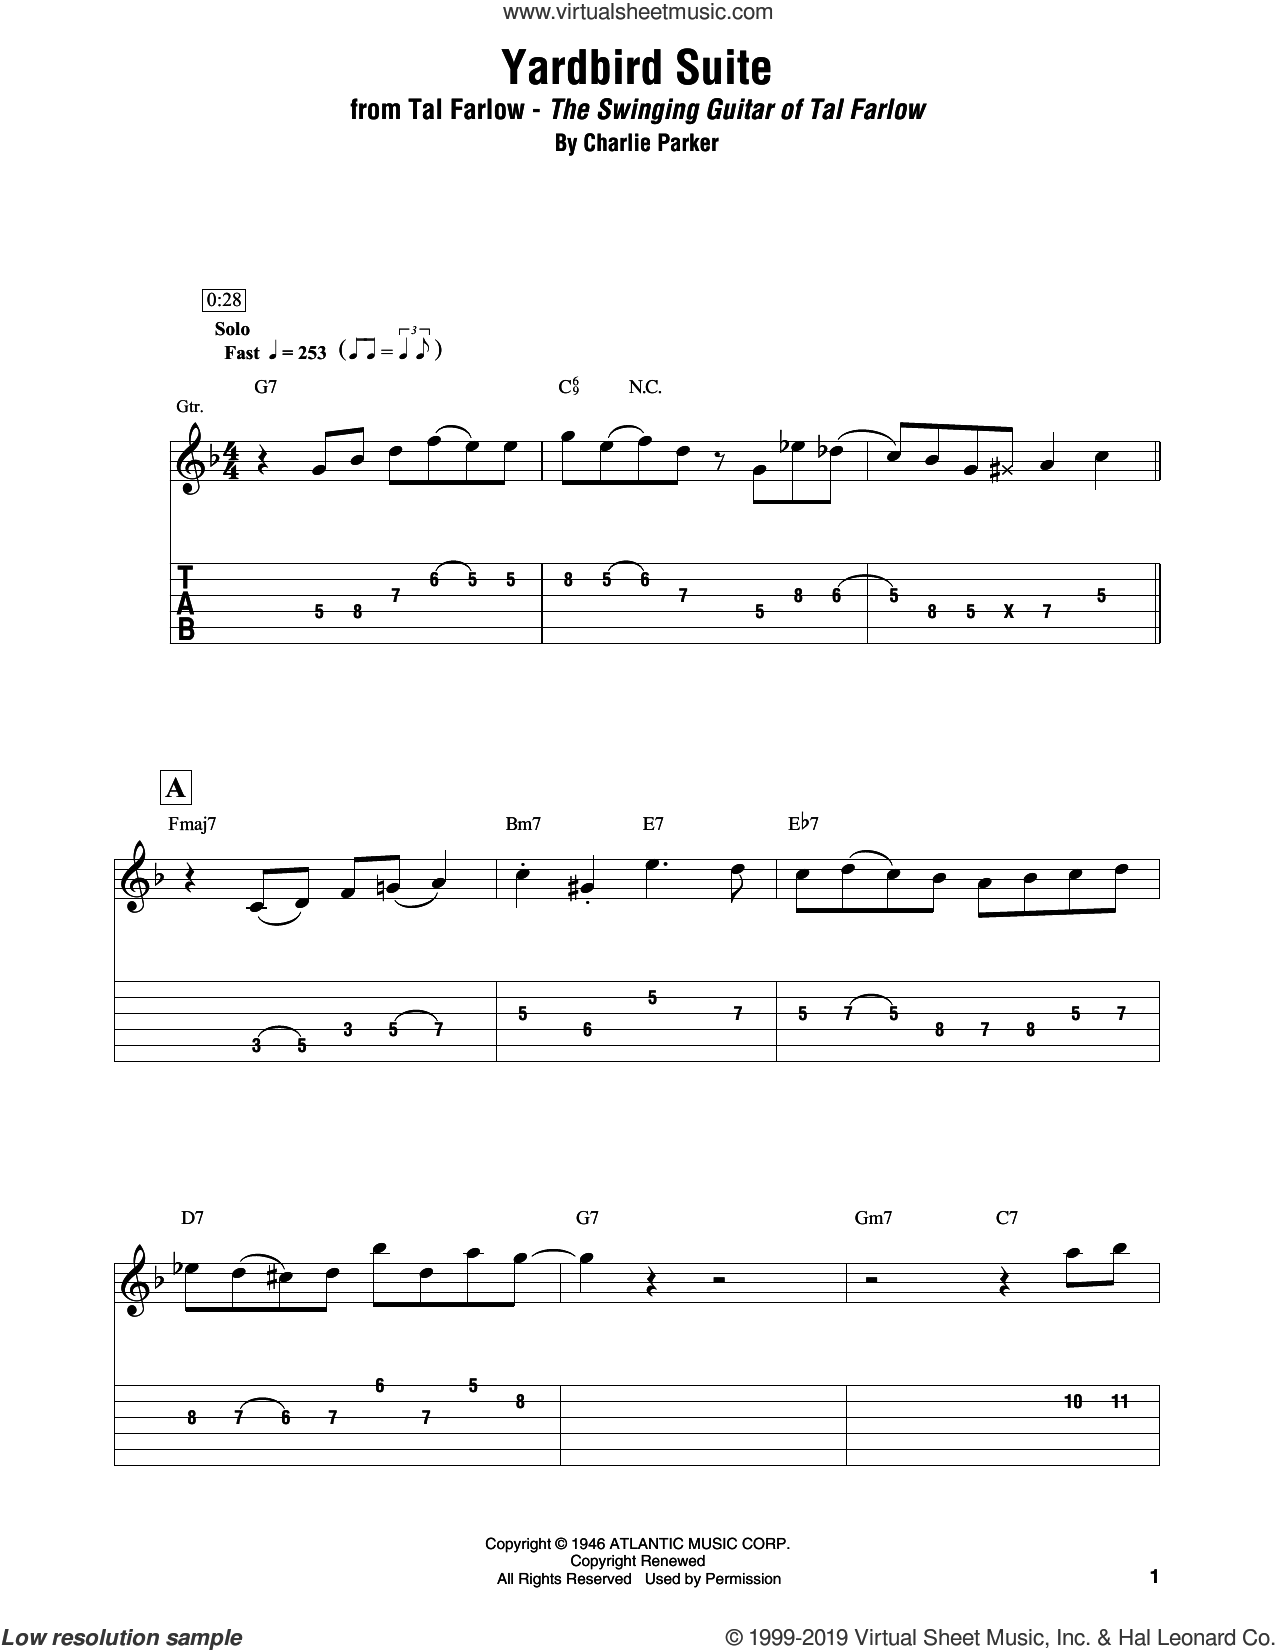 Yardbird Suite sheet music for electric guitar (transcription) by Tal Farlow and Charlie Parker, intermediate skill level